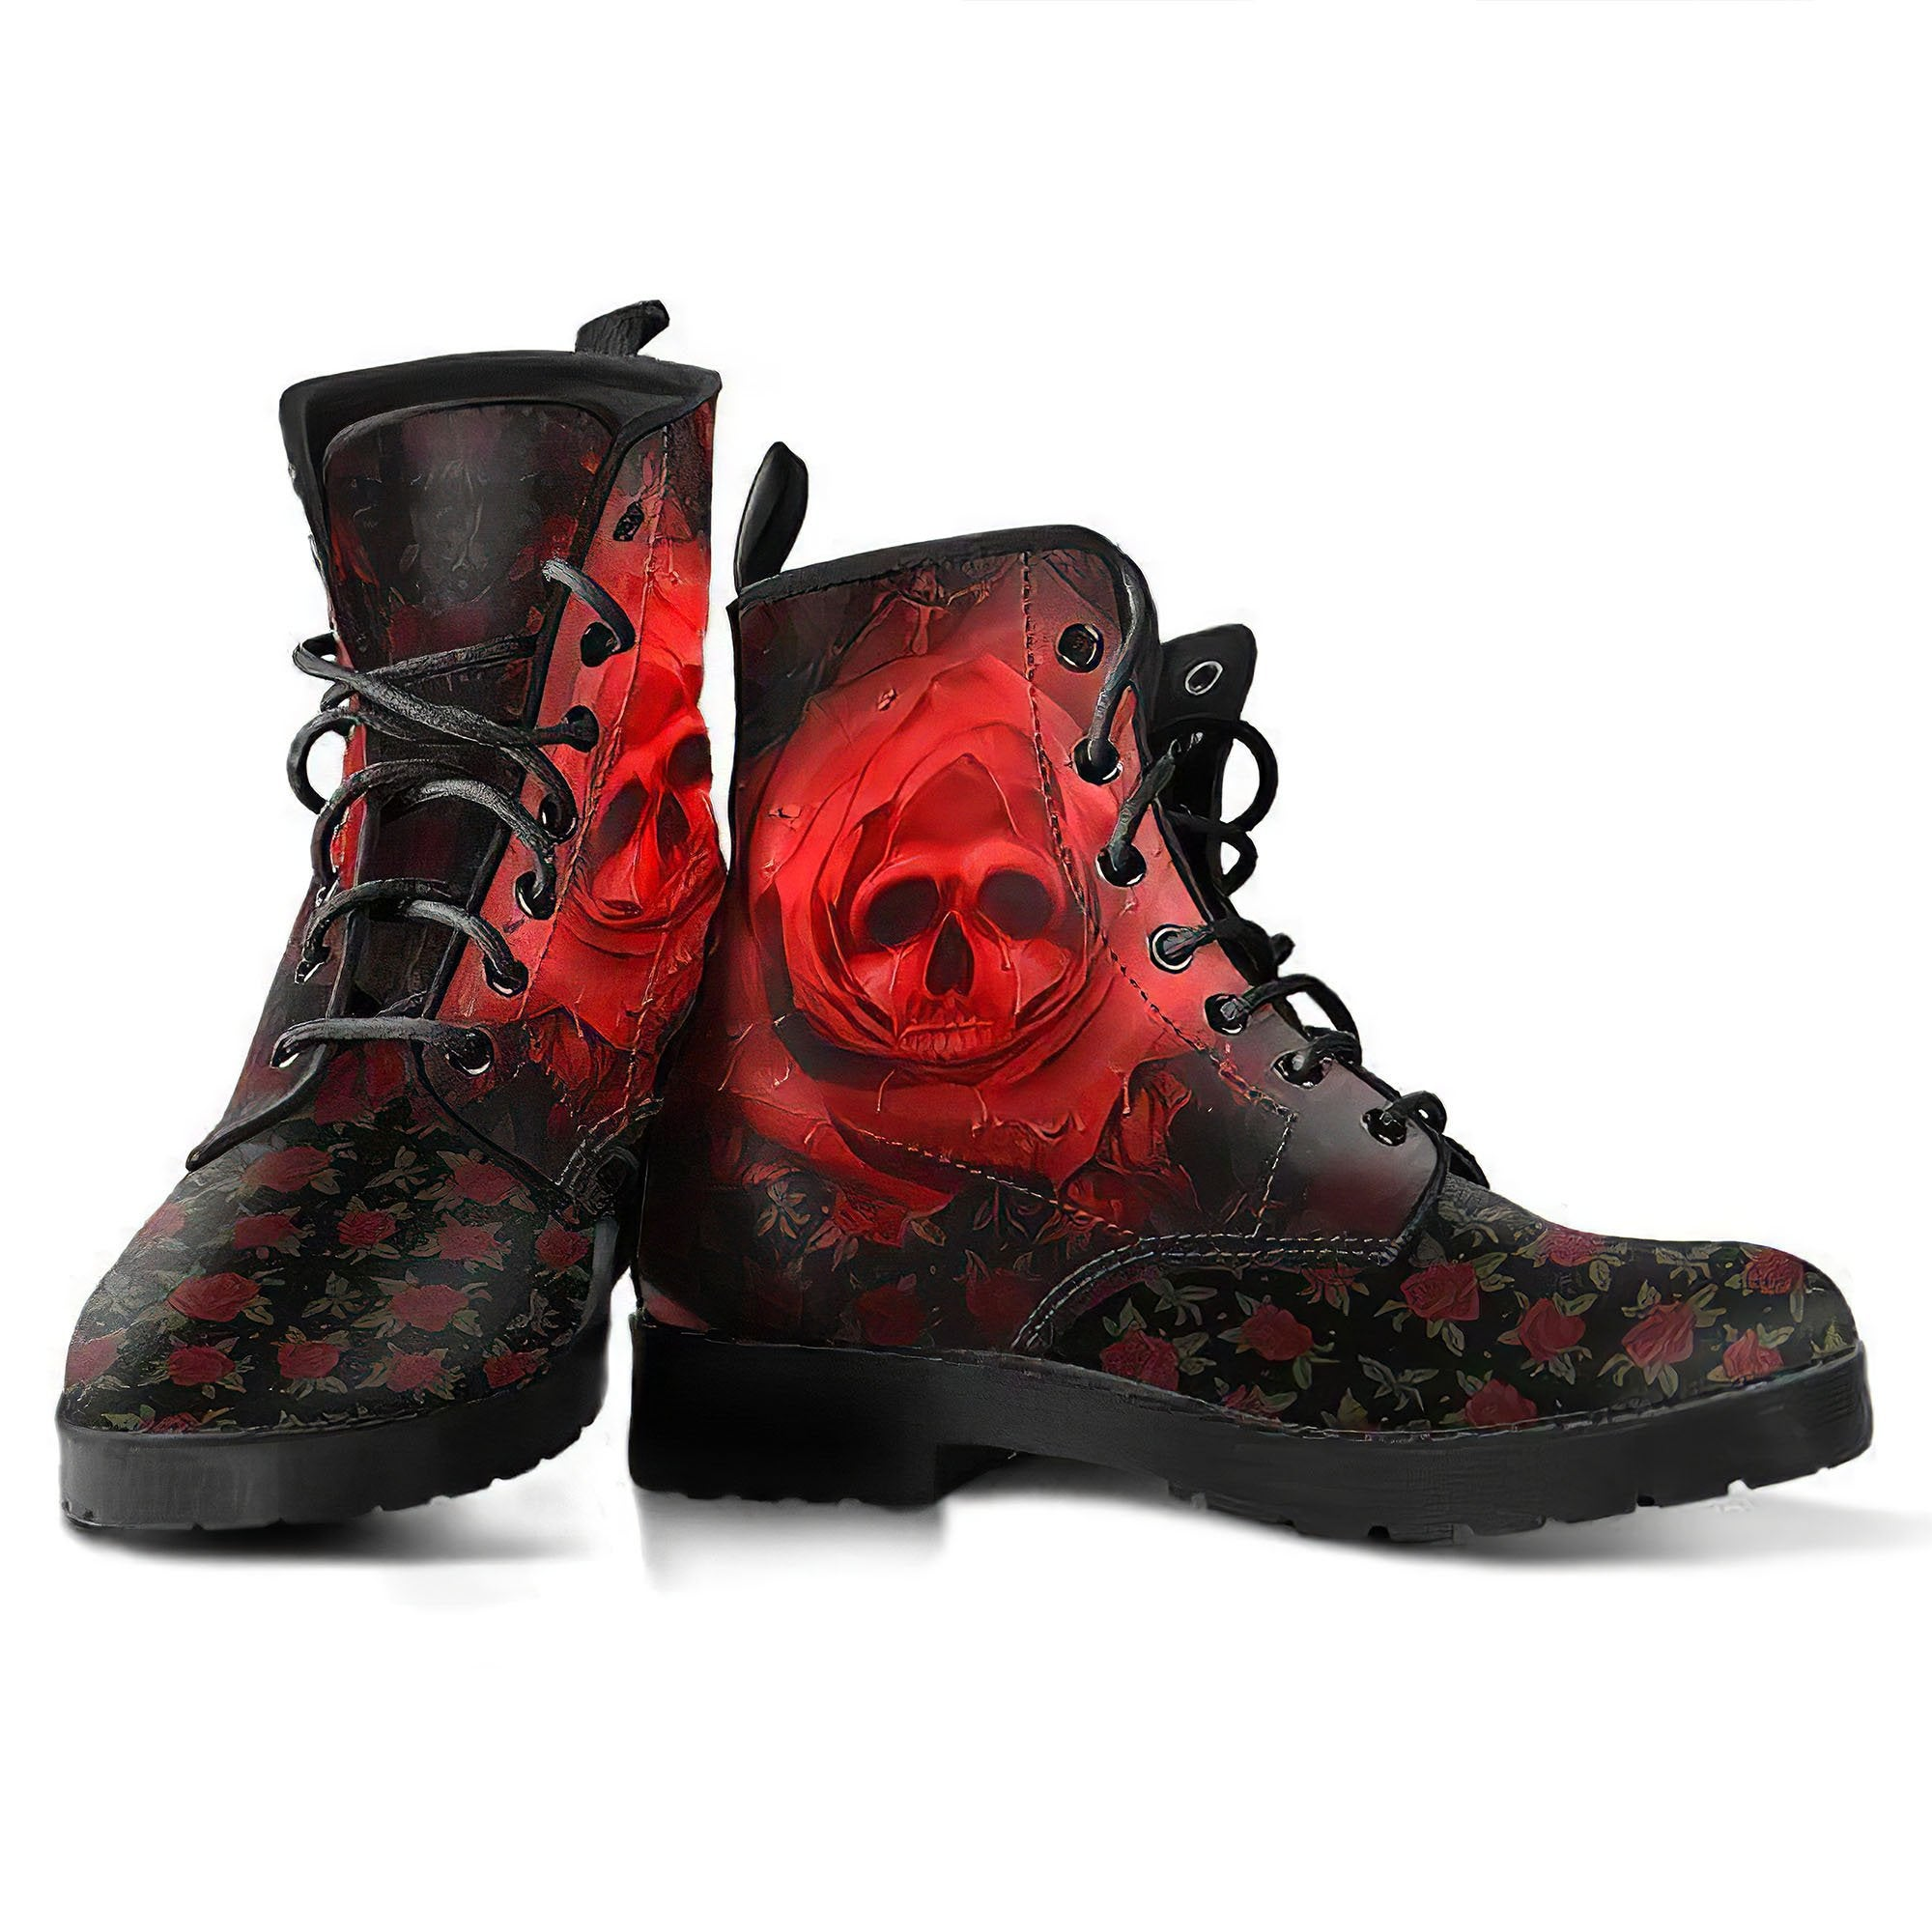 Rose Skull, Womens Leather Boots, Skull Shoes, Ankle Boots Women, Winter Shoes, Womens Rain Boots, Boho Boots, Walking Boots Women